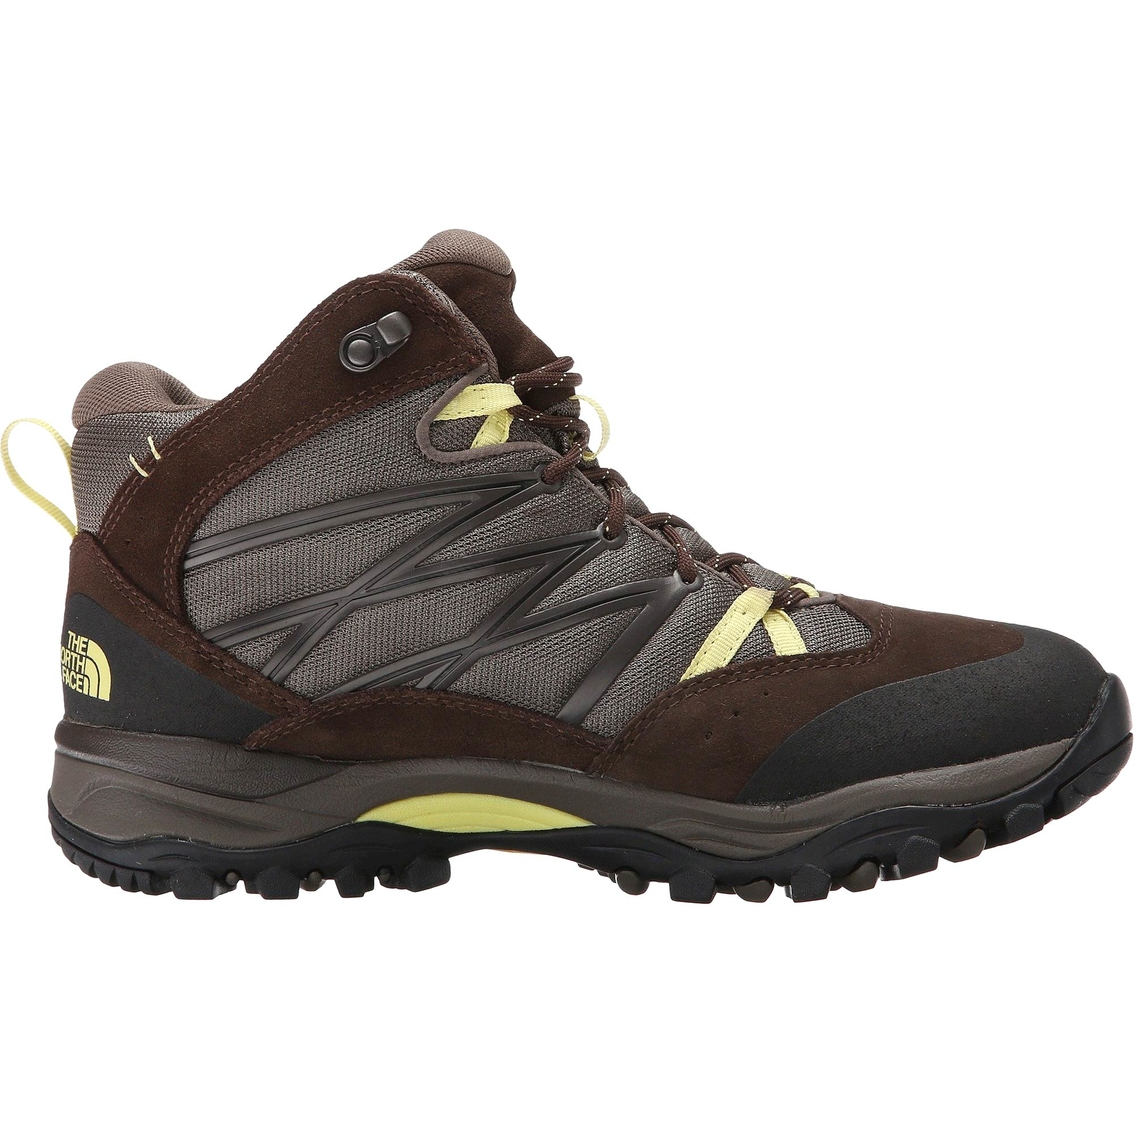 The North Face Womenu0026#39;s Storm Ii Mid Hiking Boots | Outdoor ...